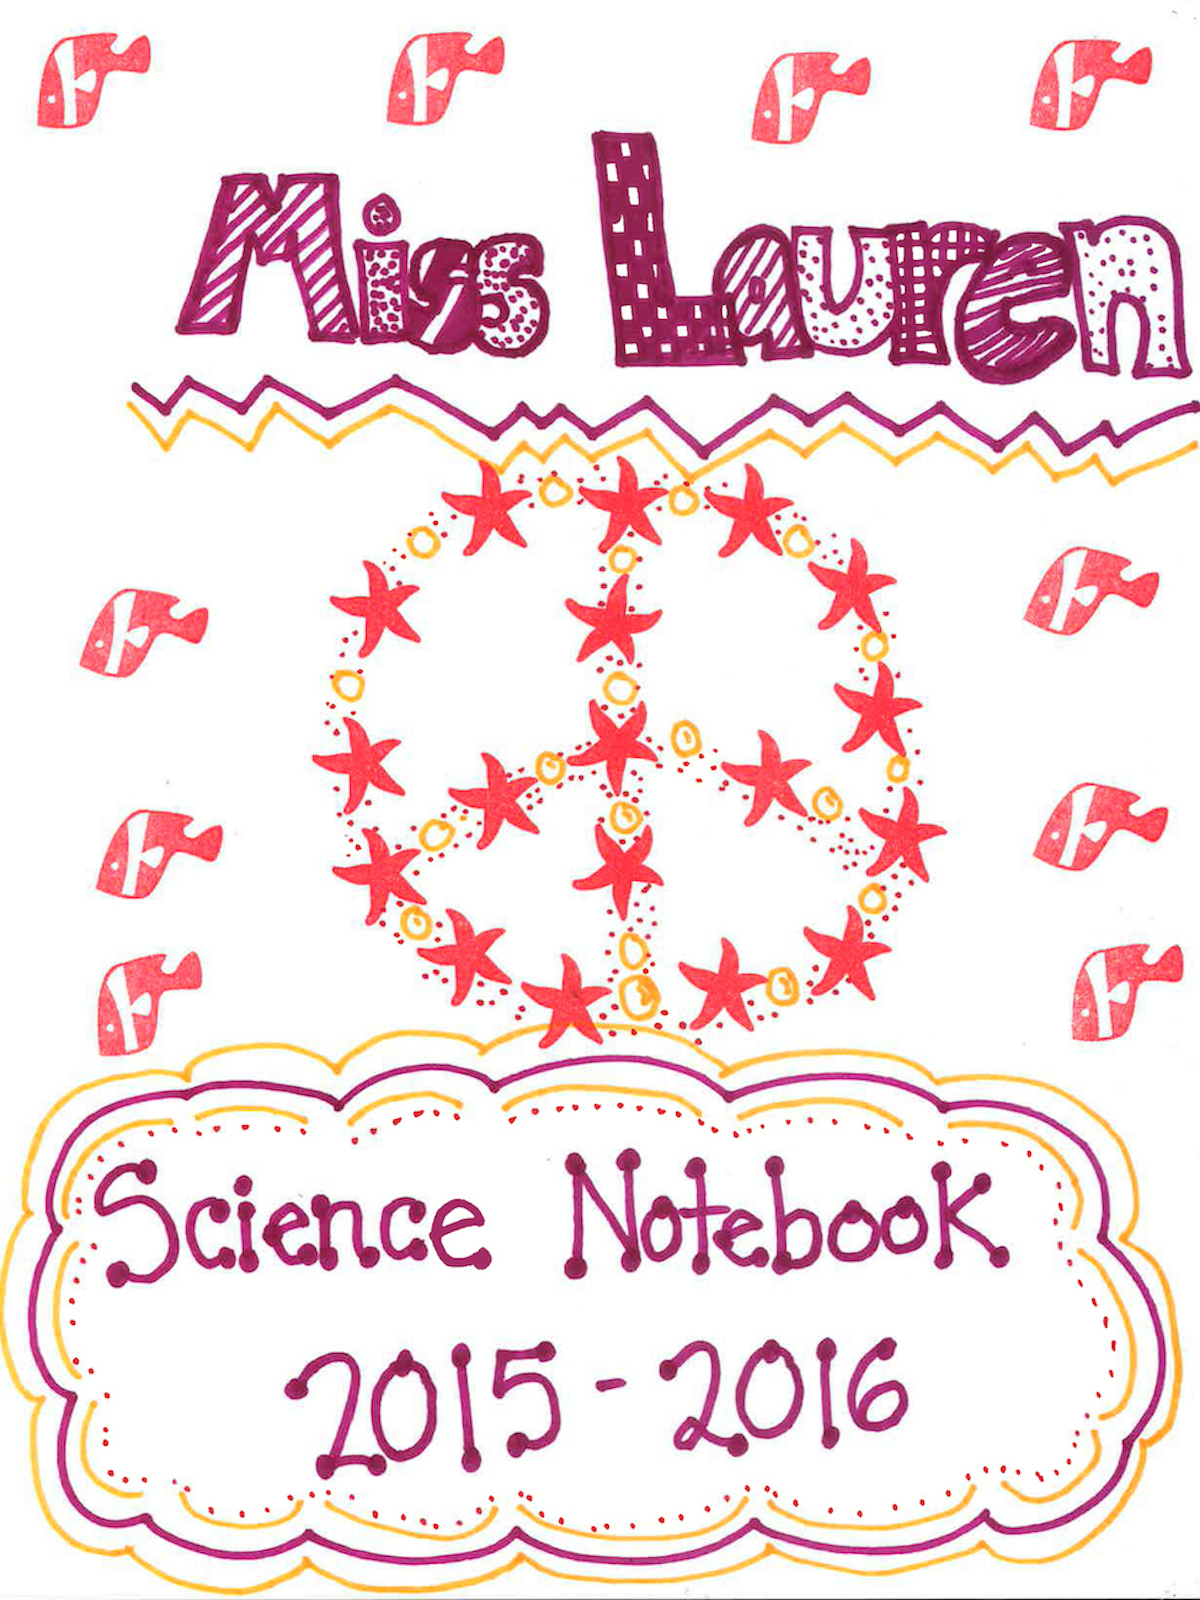 decorate your science notebook